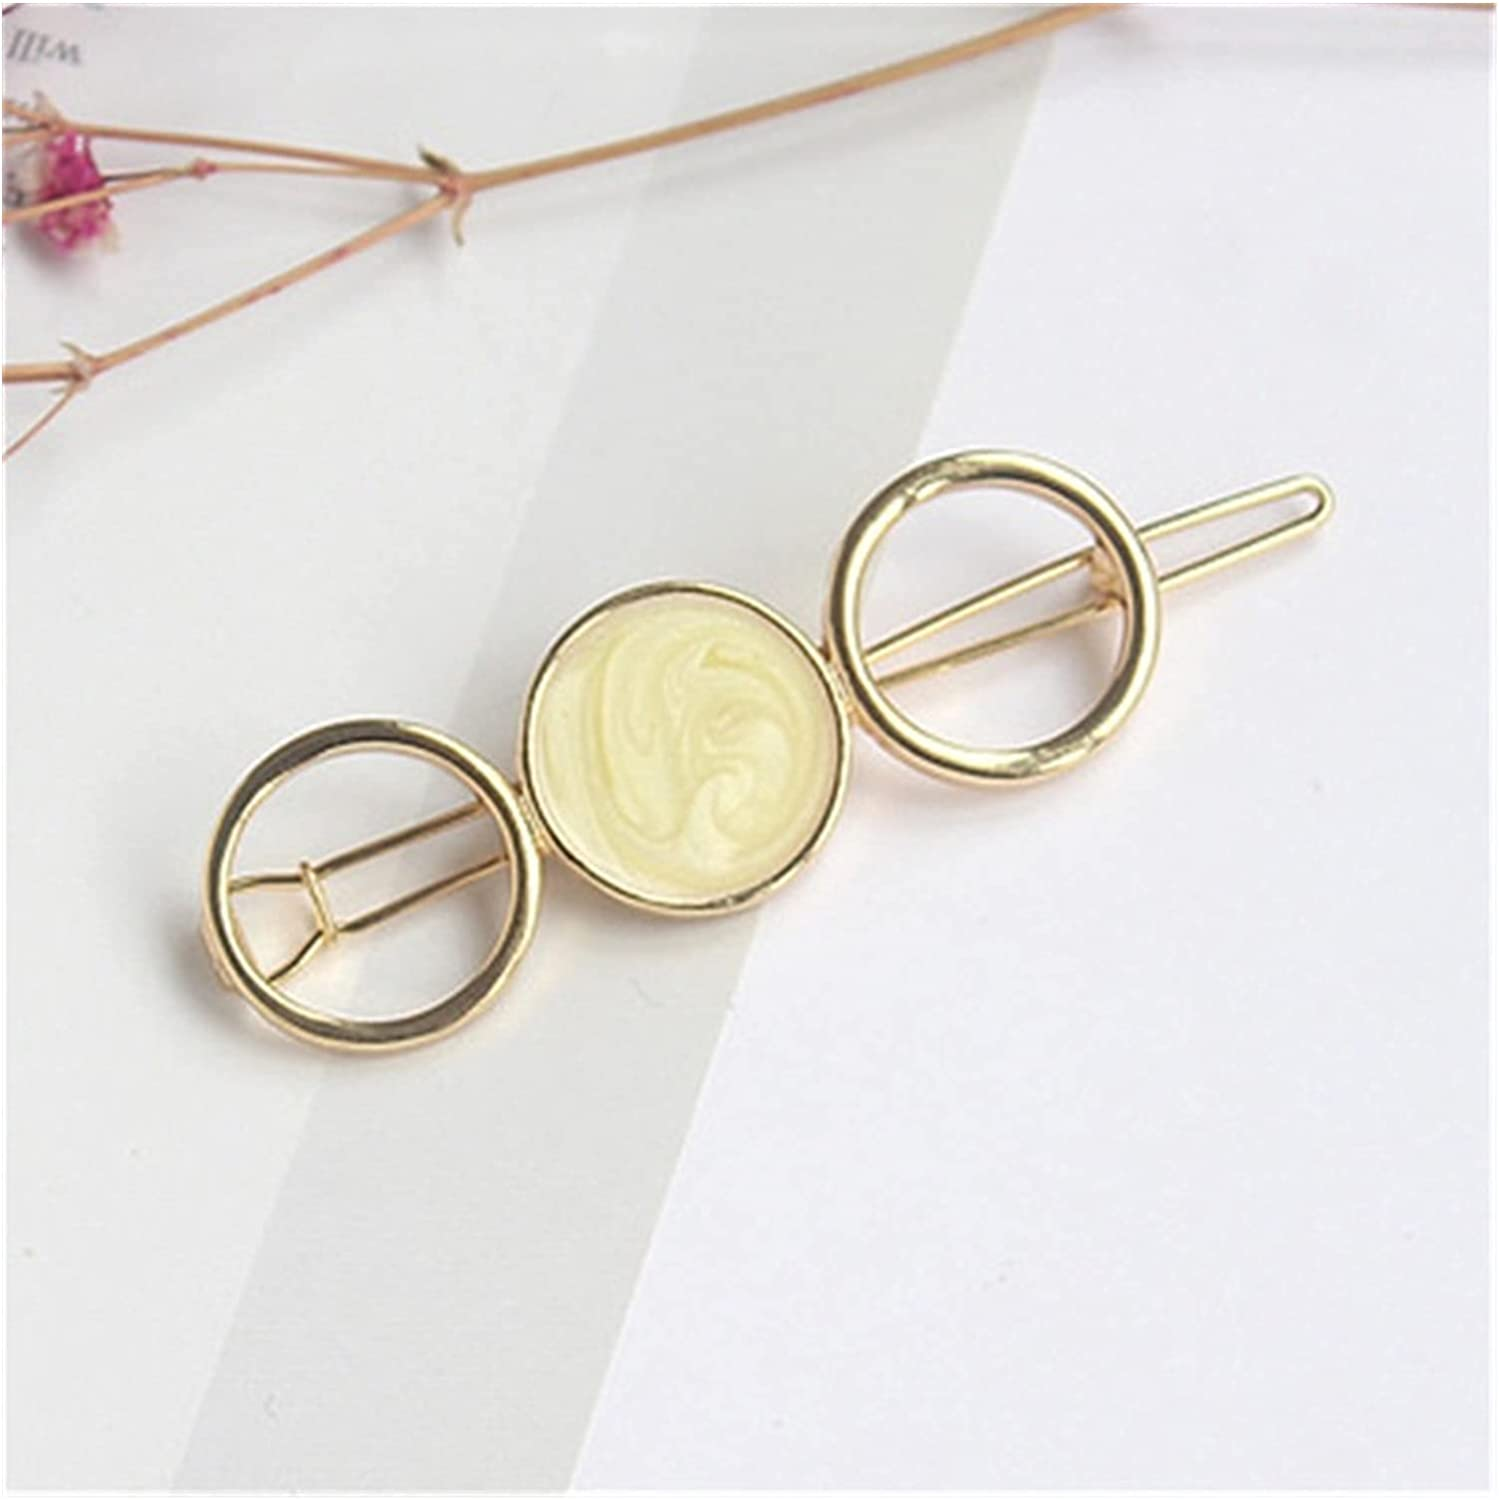 MINGQIMY Hairpin Fashion Women Hair Simple Accessories Star Max 78% OFF Circ Popularity